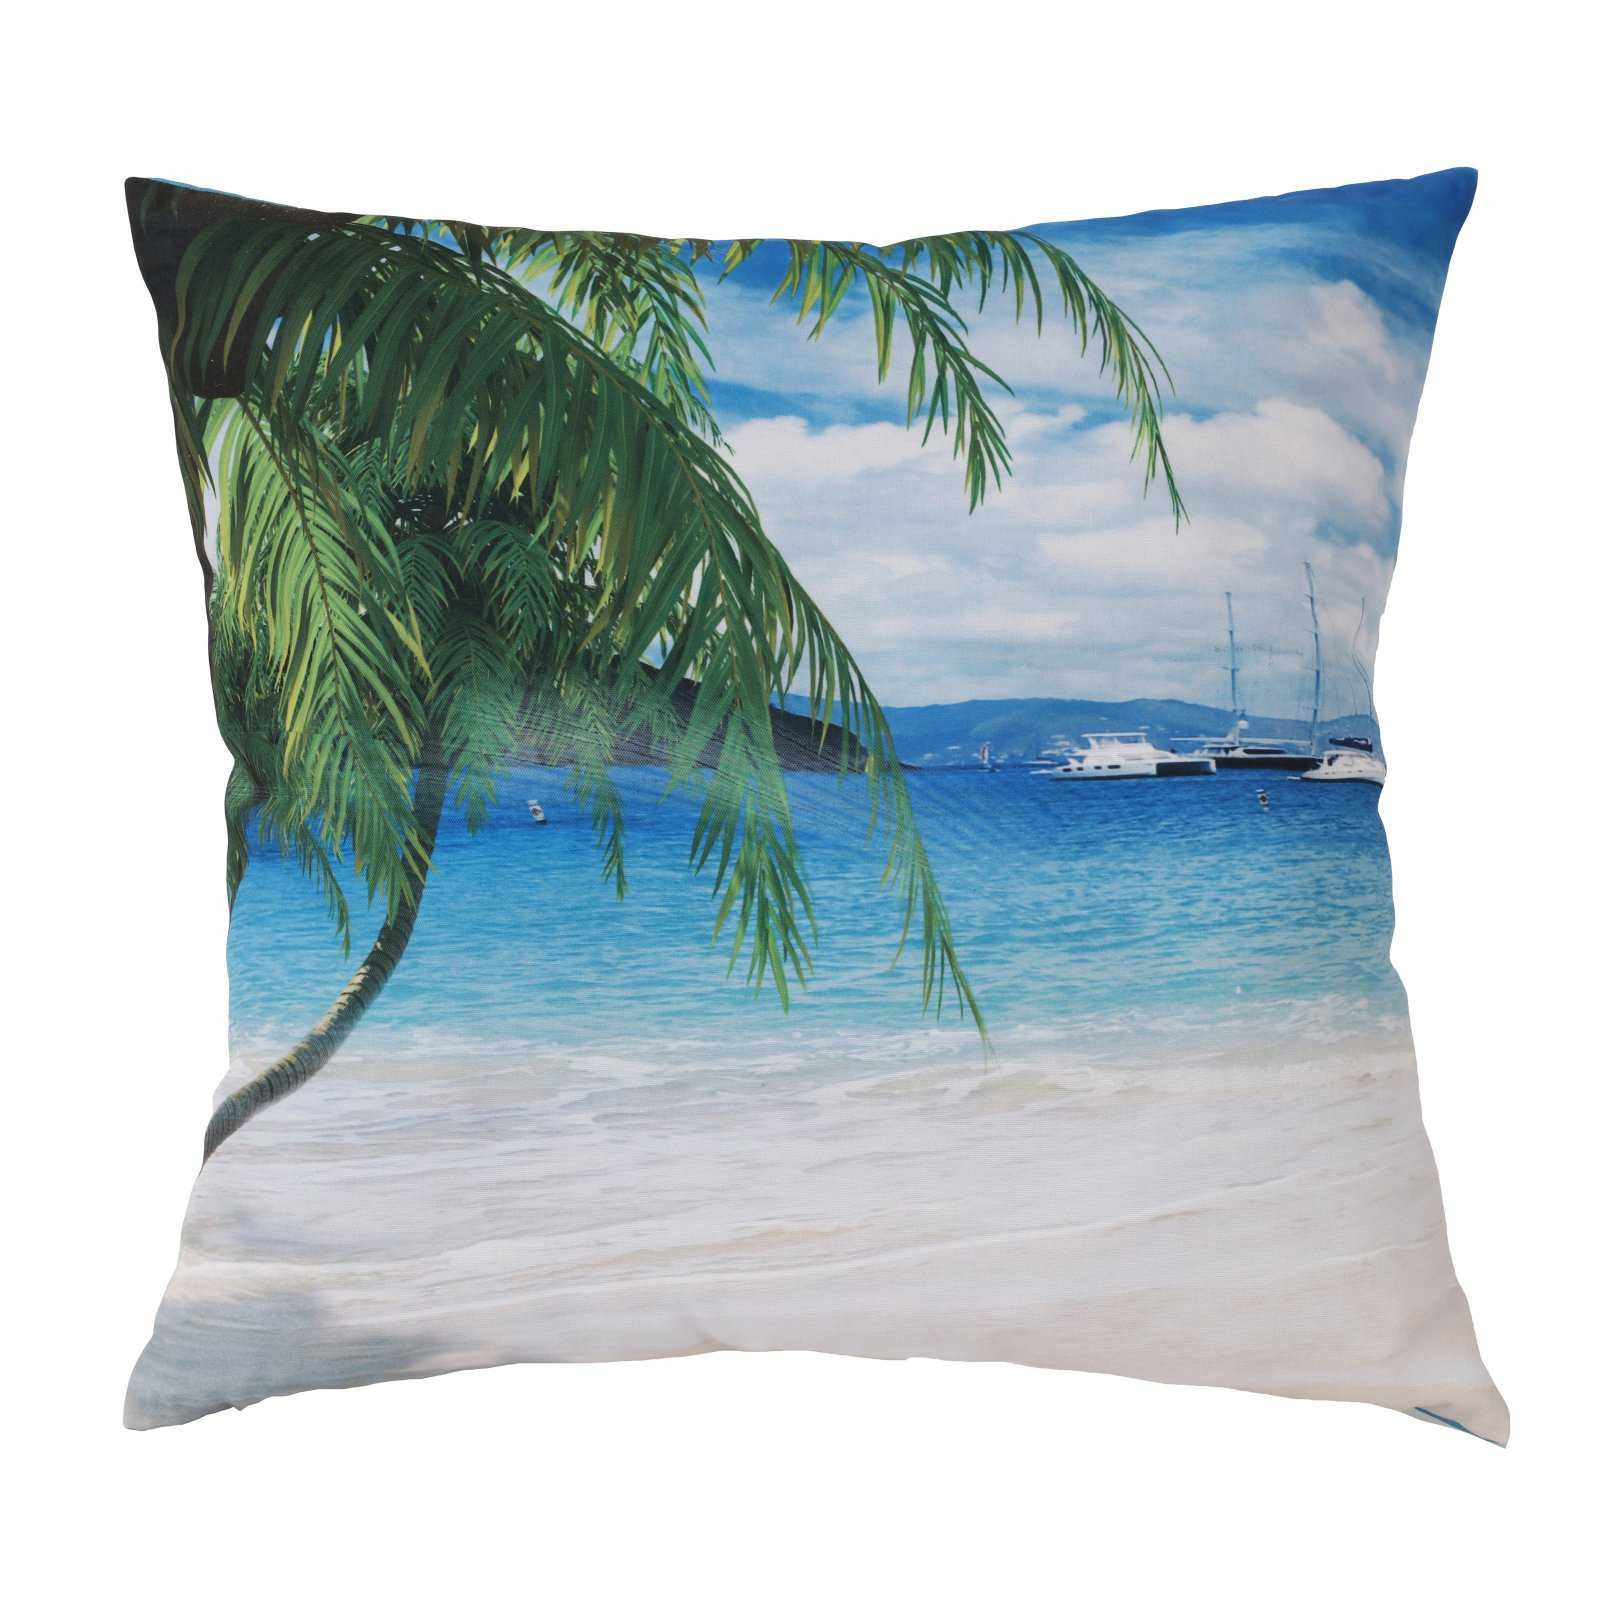 Habitat Dreamy Beach Outdoor Throw Pillow